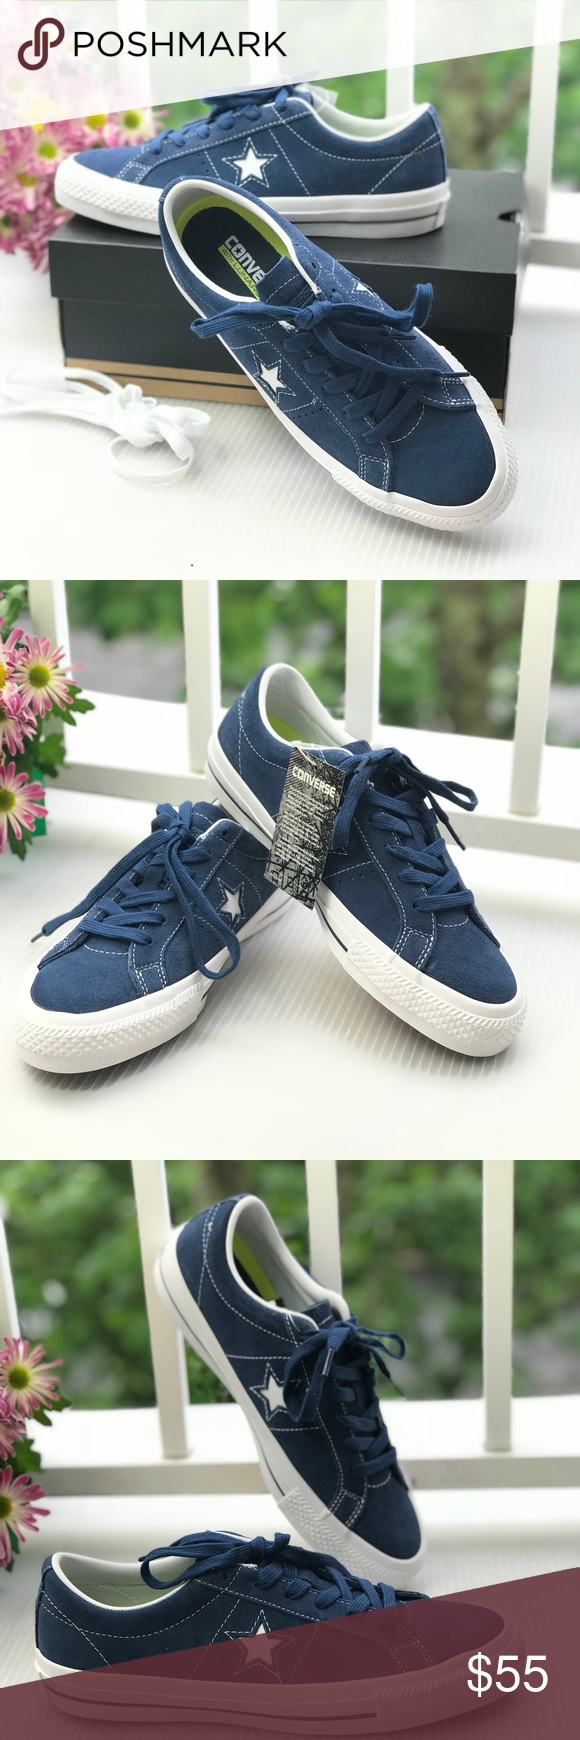 NWT Converse One Star Skate Navy Suede W AUTHENTIC Brand new